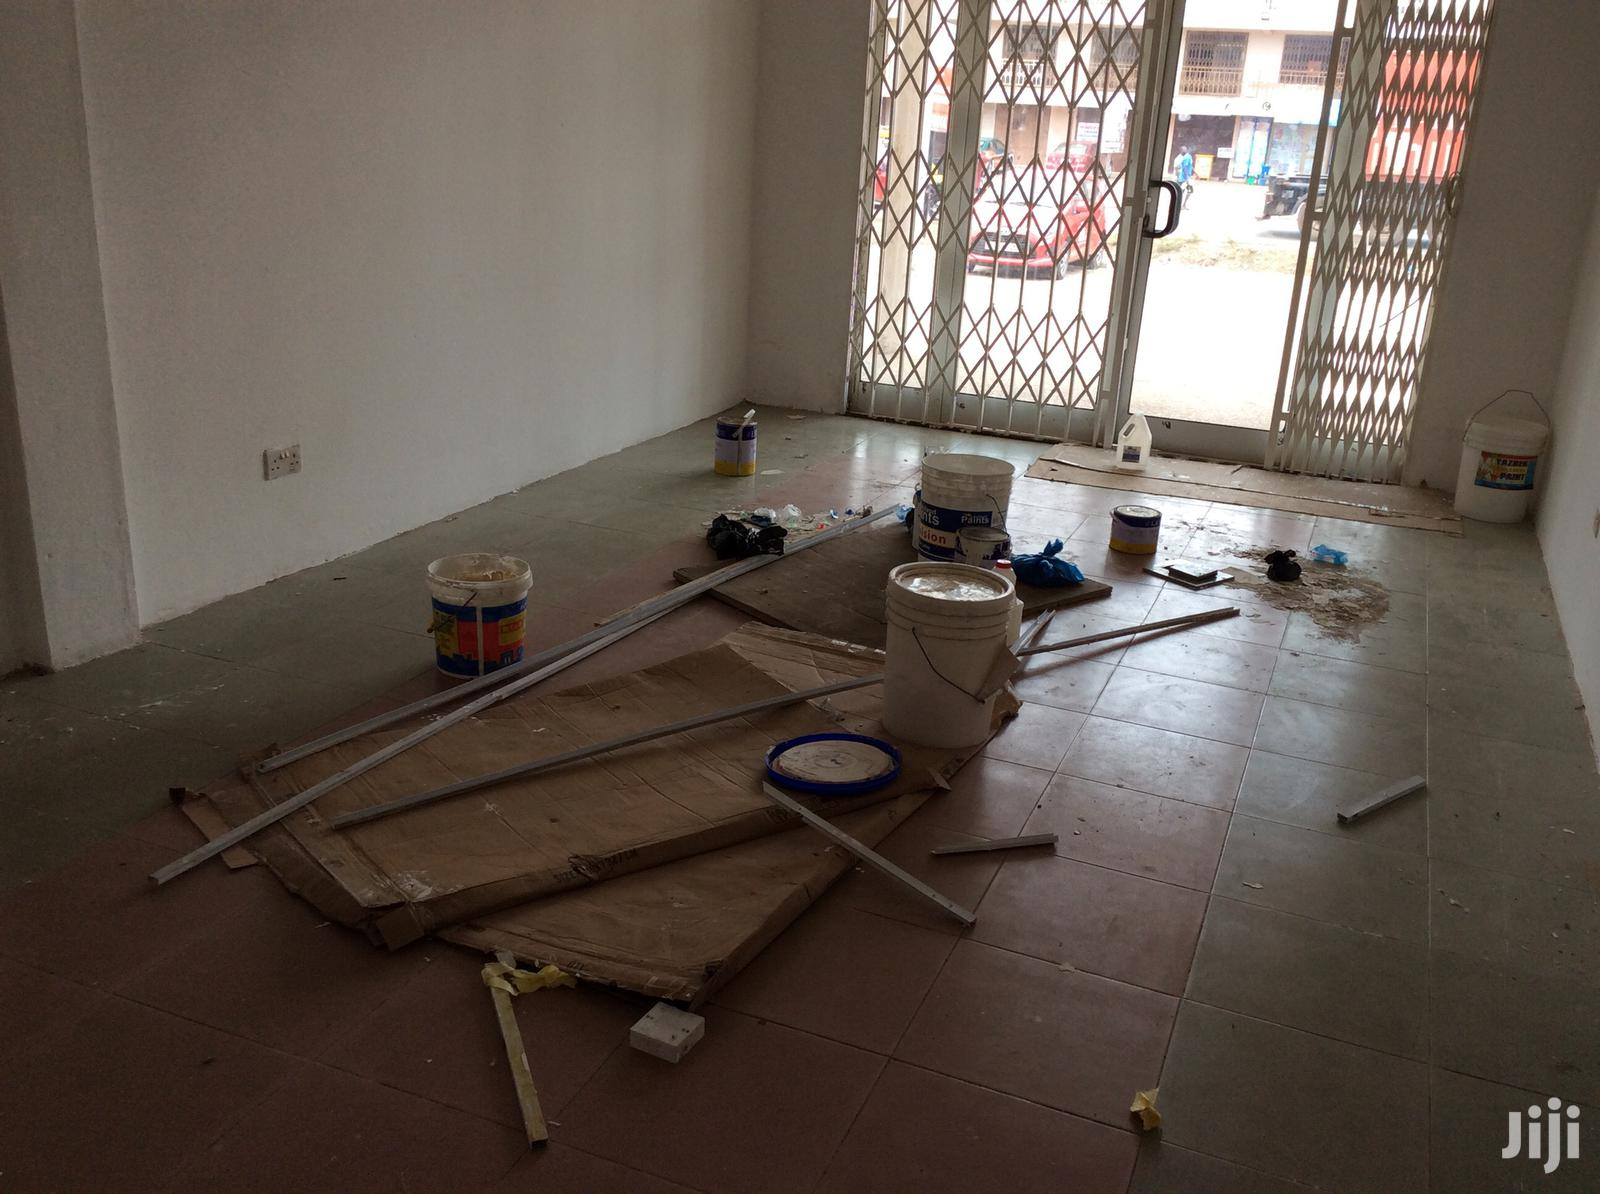 Shop/Office Space 4 Rent, Ground Floor, Spintex Main Road | Commercial Property For Rent for sale in Ledzokuku-Krowor, Greater Accra, Ghana